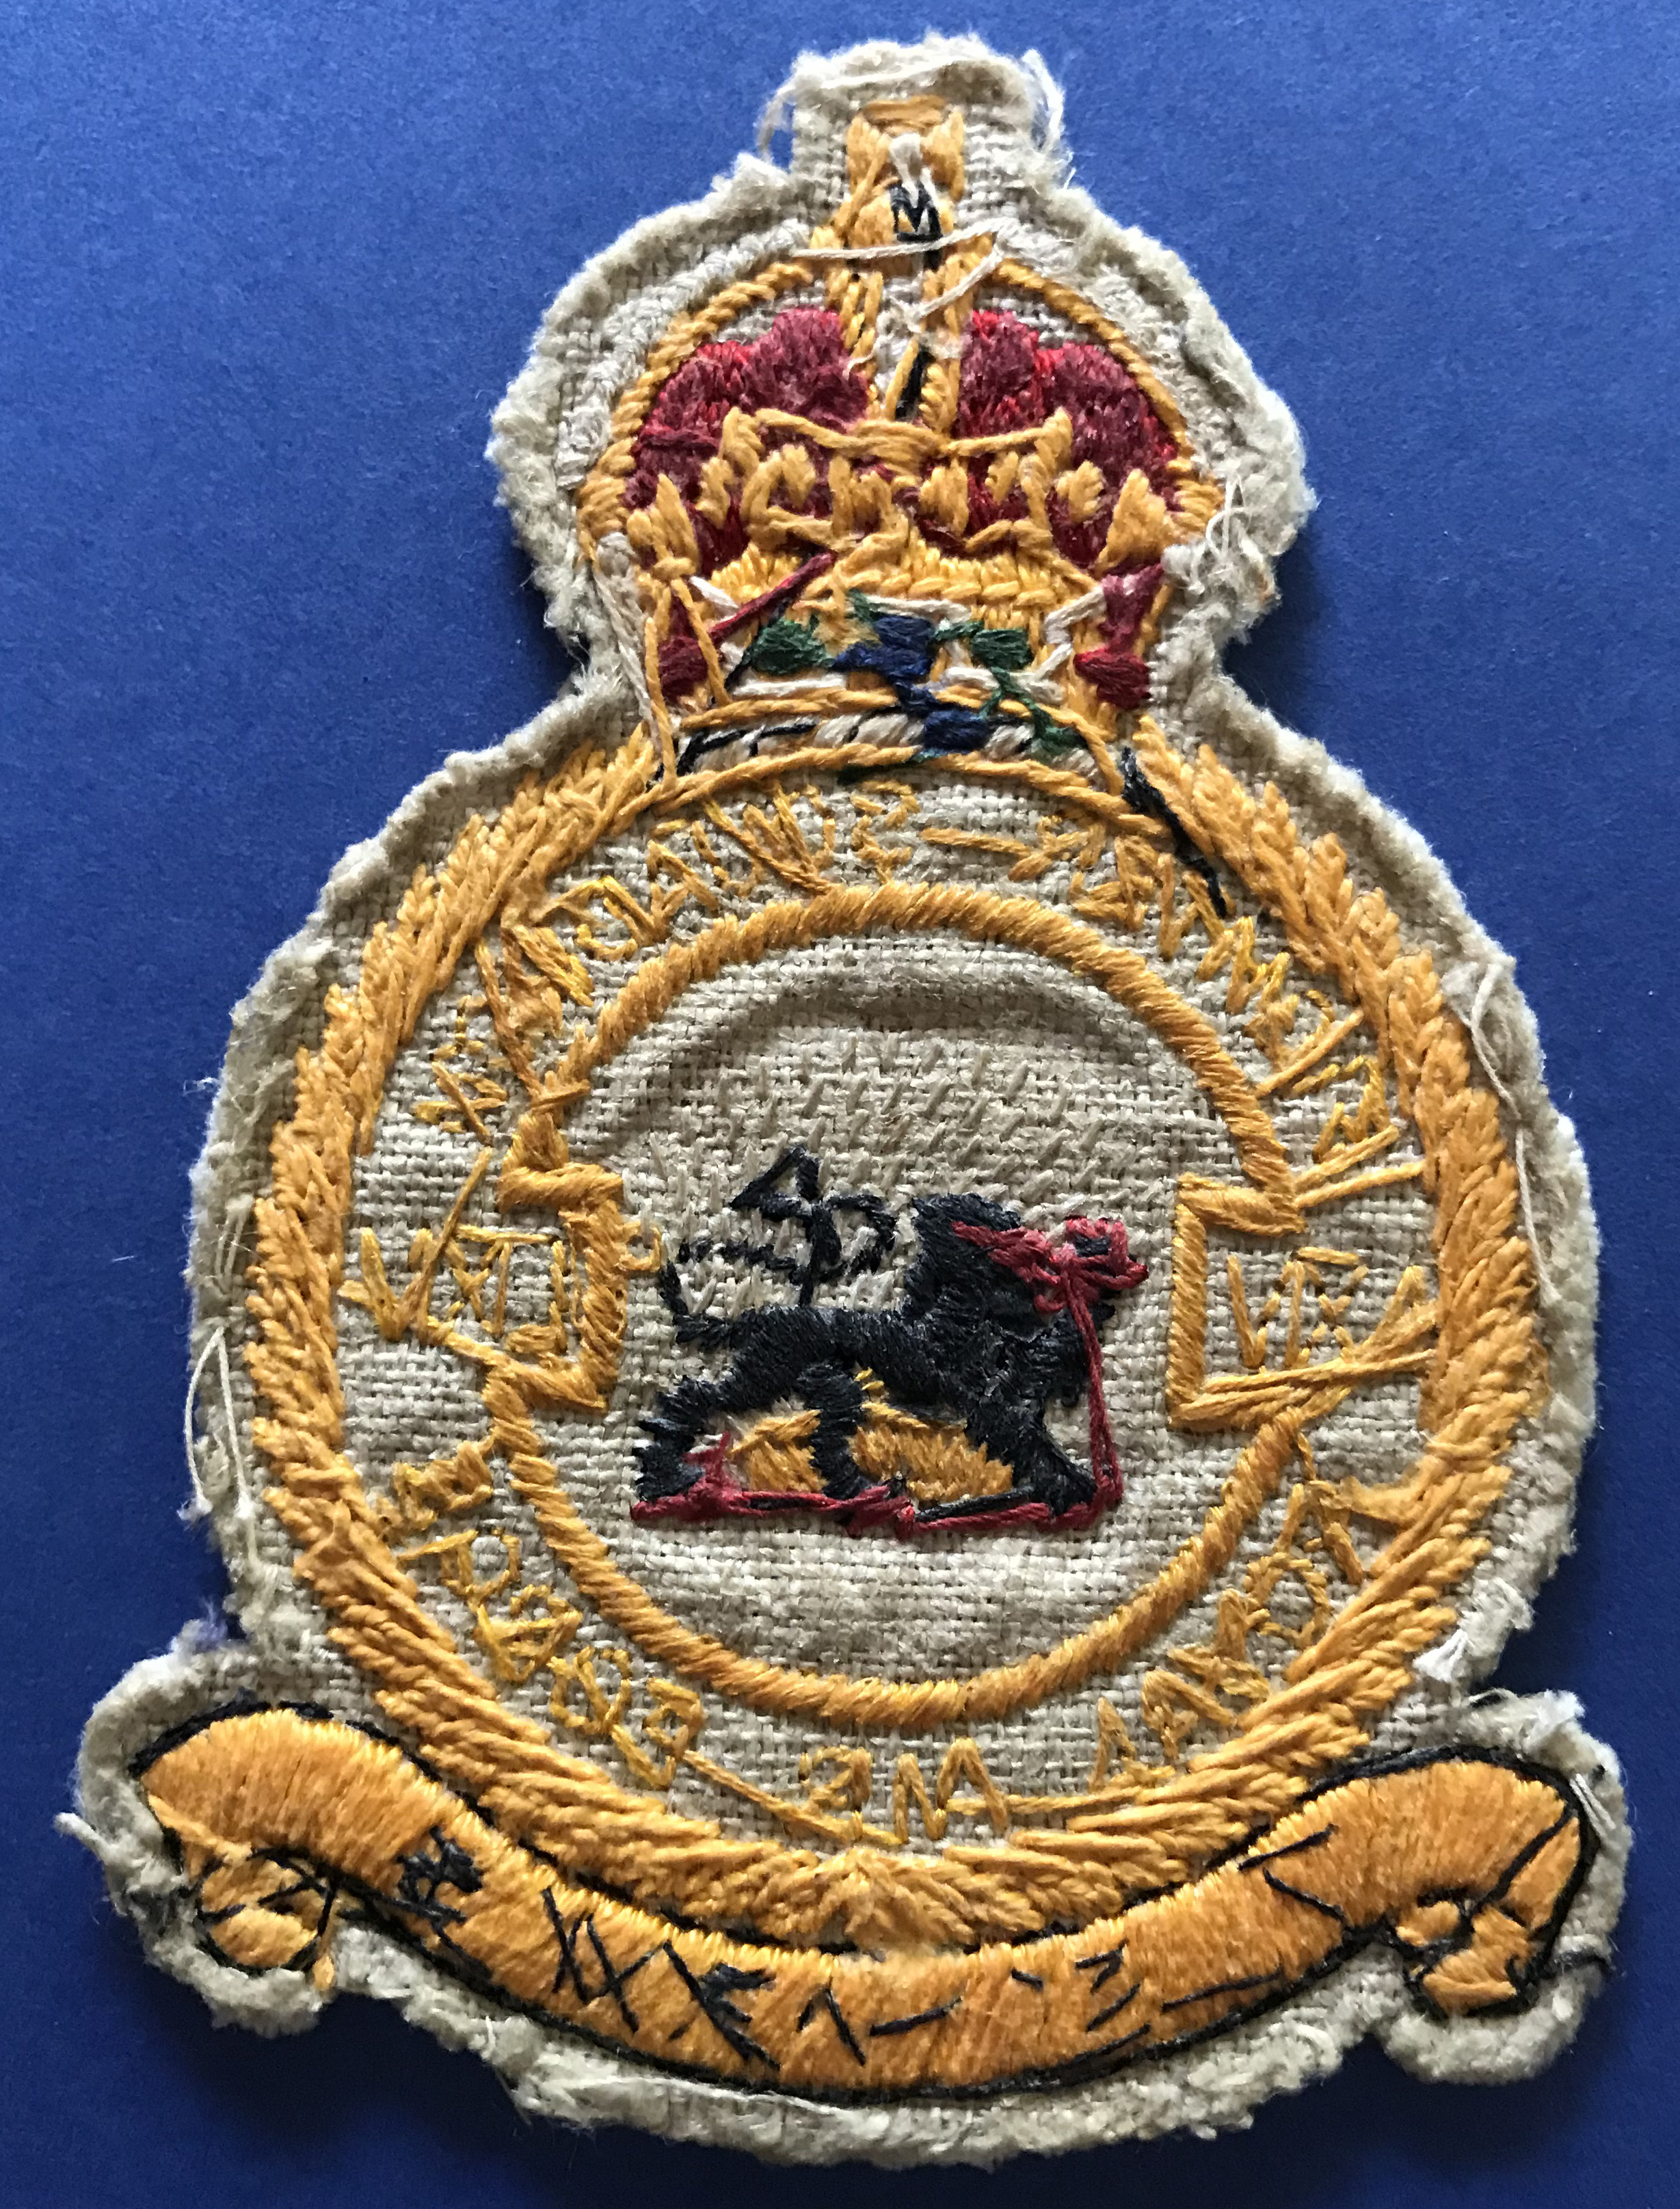 RAF prestige suit patch, 65 squadron